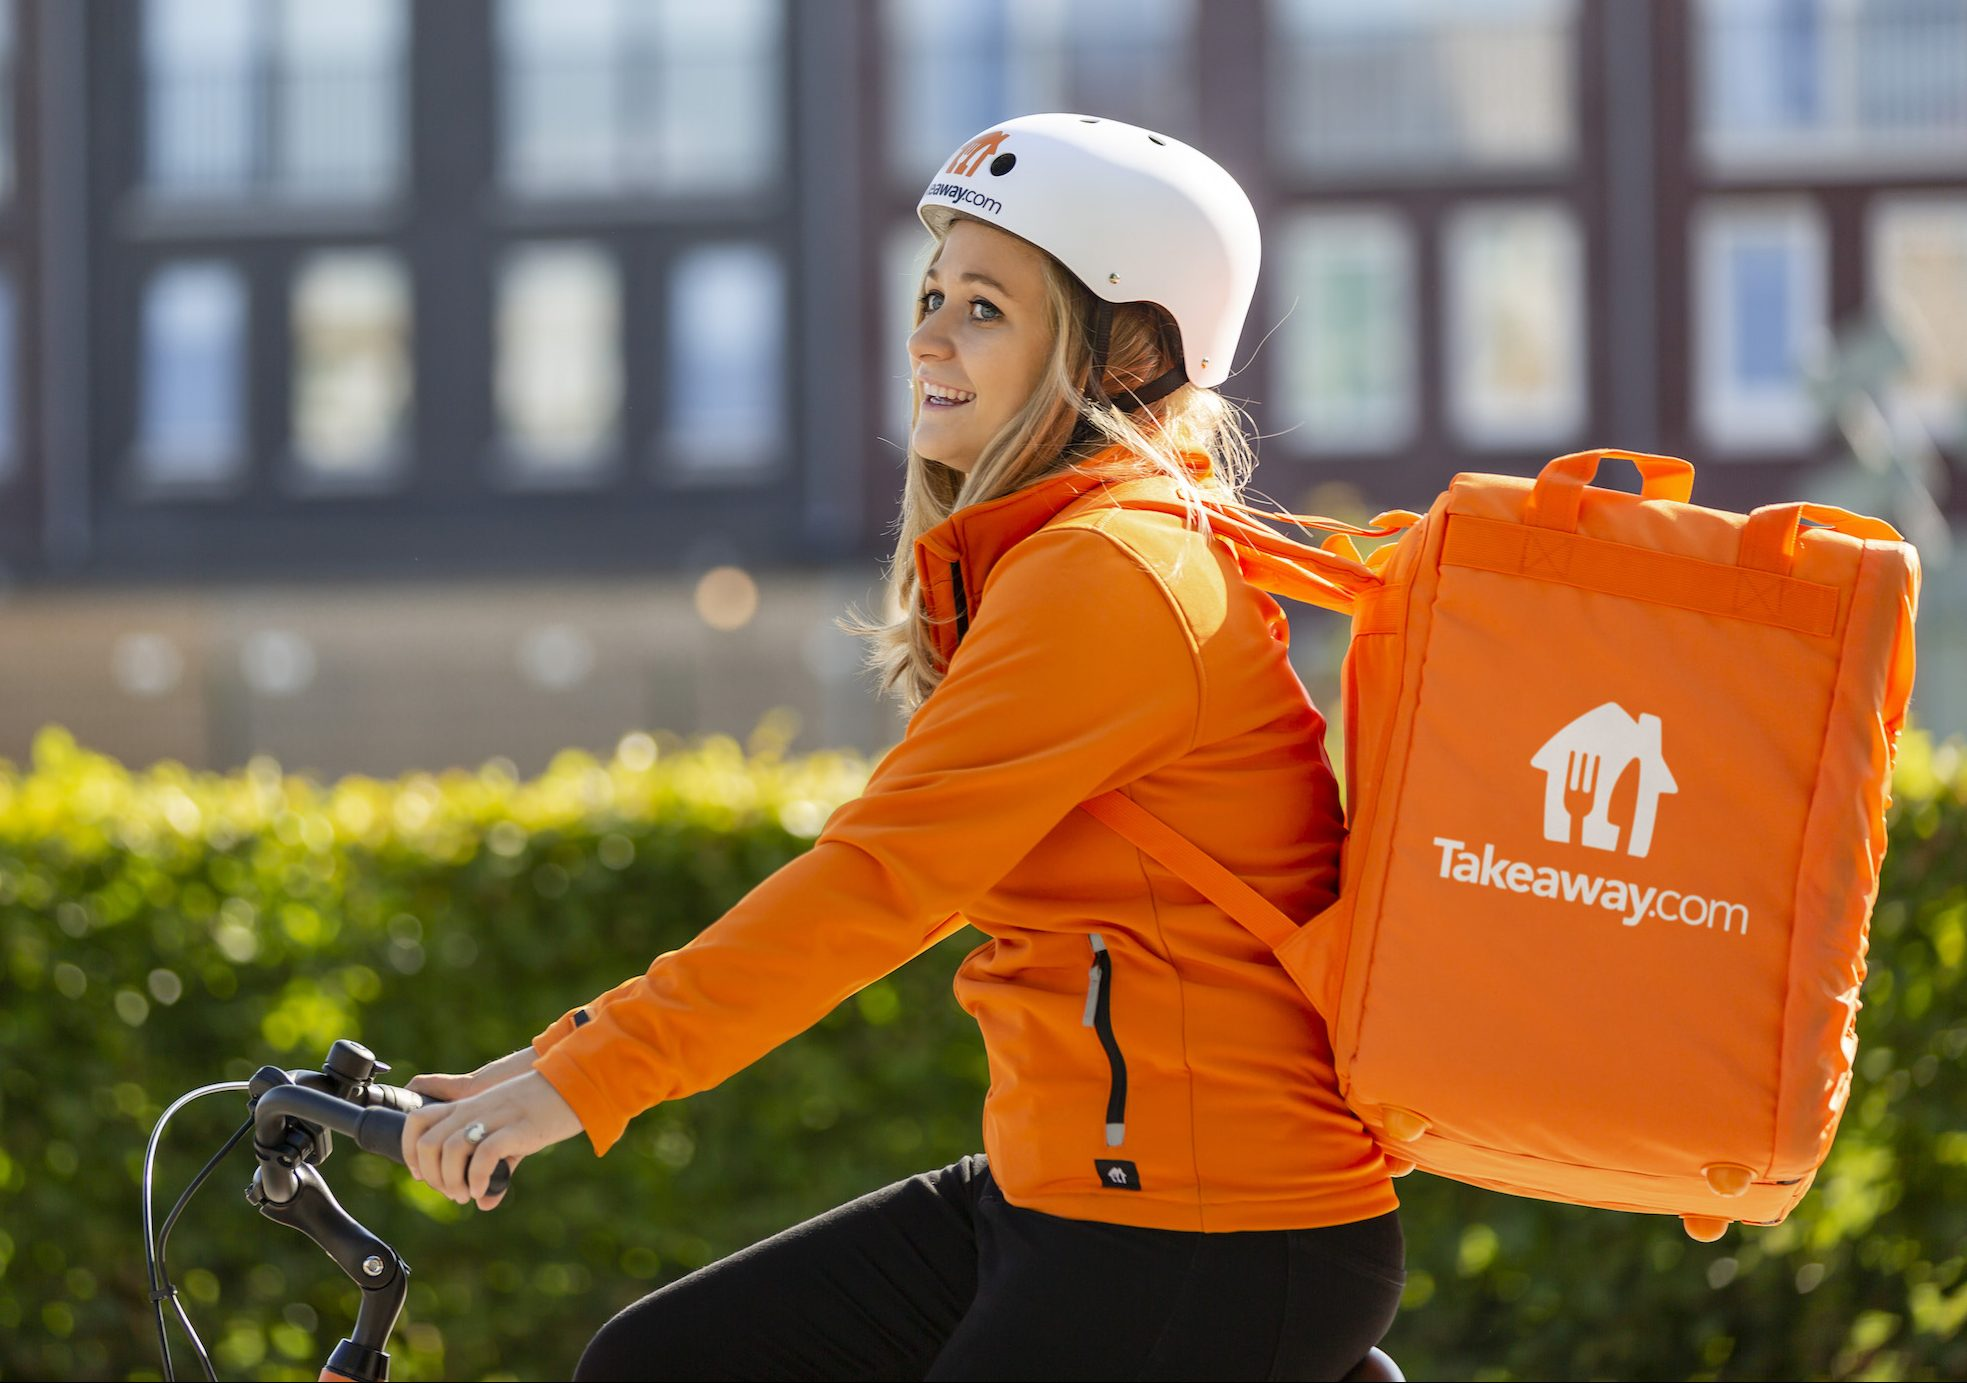 A girl on the bike is delivering food for Takeaway.com